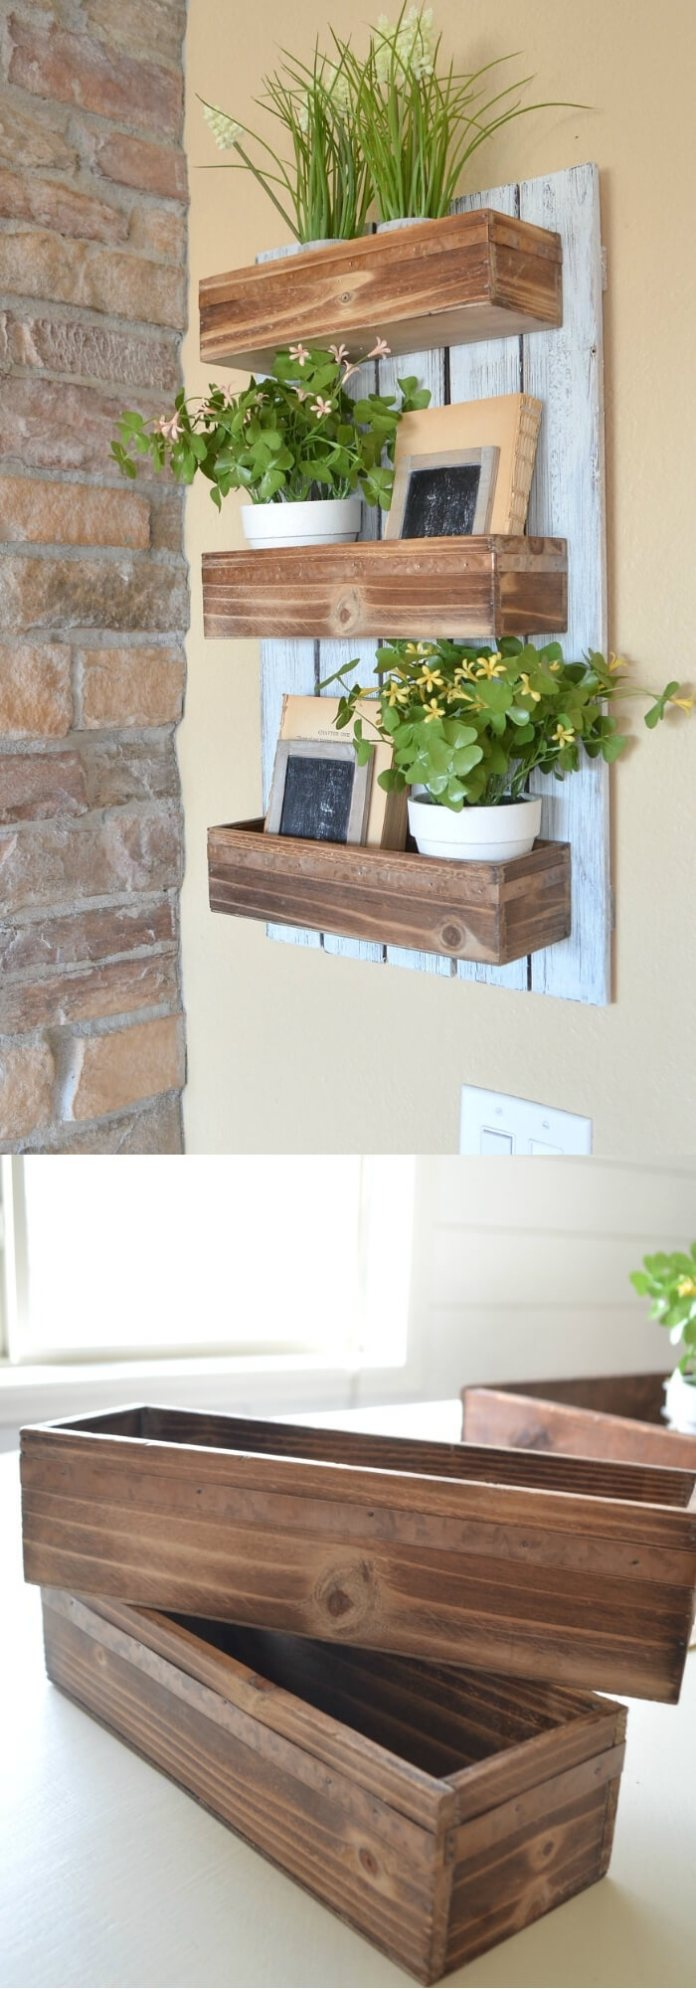 DIY wooden wall planter | Best Farmhouse Indoor Plant Decor Ideas & Designs